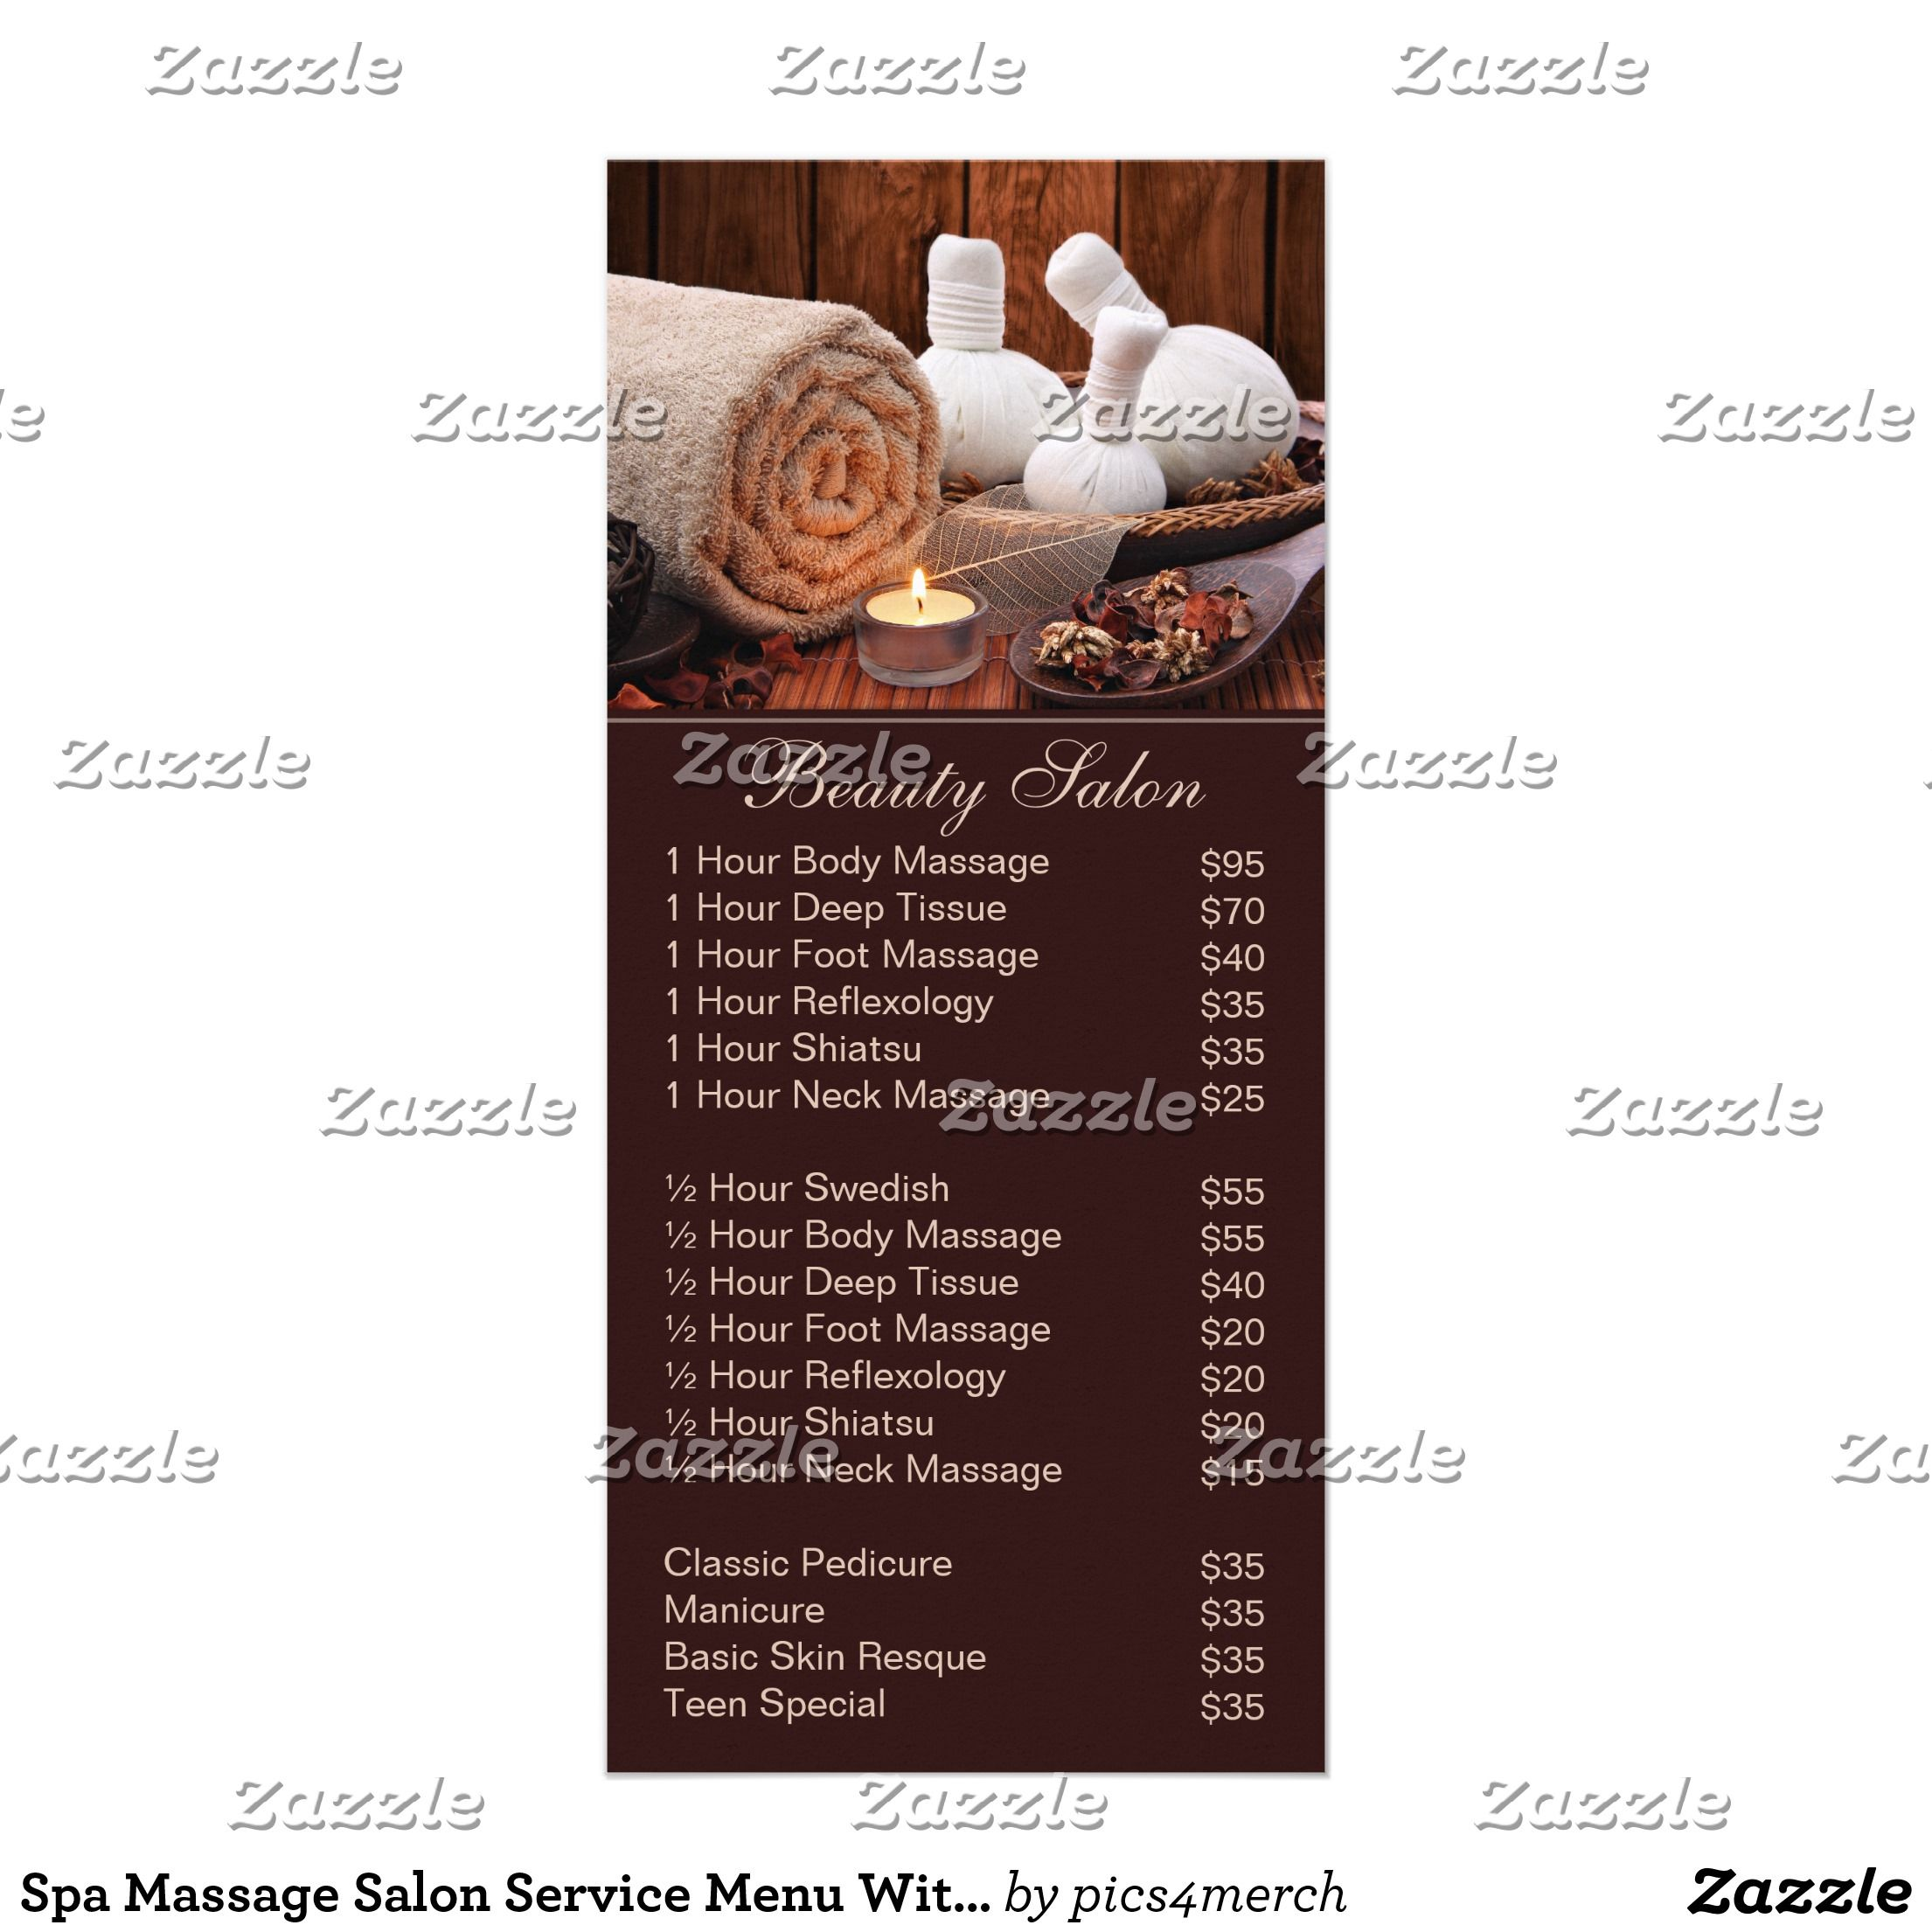 Spa Massage Salon Service Menu With Price List  Salon Services